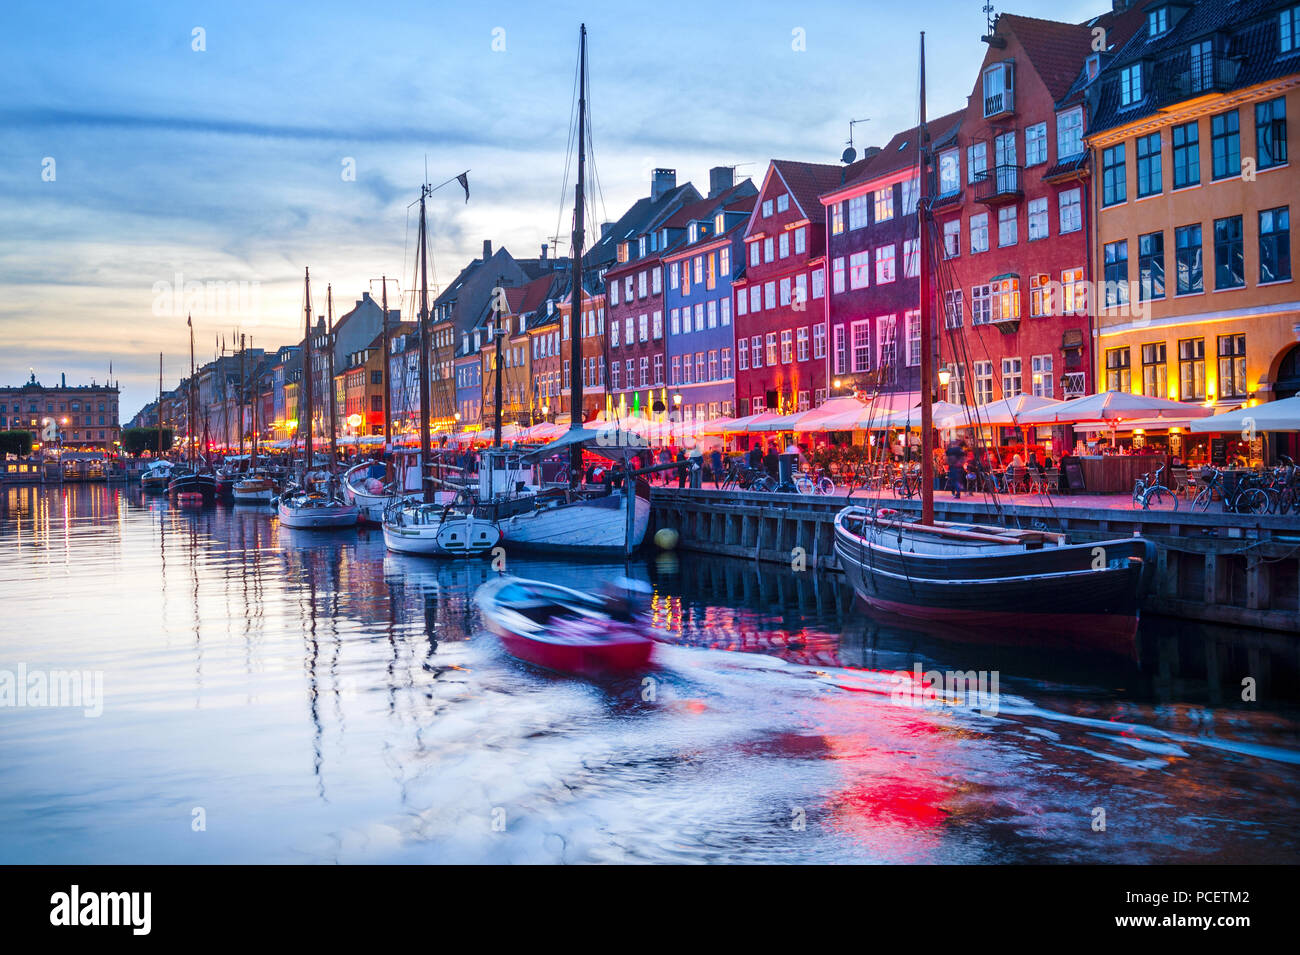 Evening scene with boats moored by illuminated Nyhavn harbor embankment, Copenhagen, Denmark - Stock Image